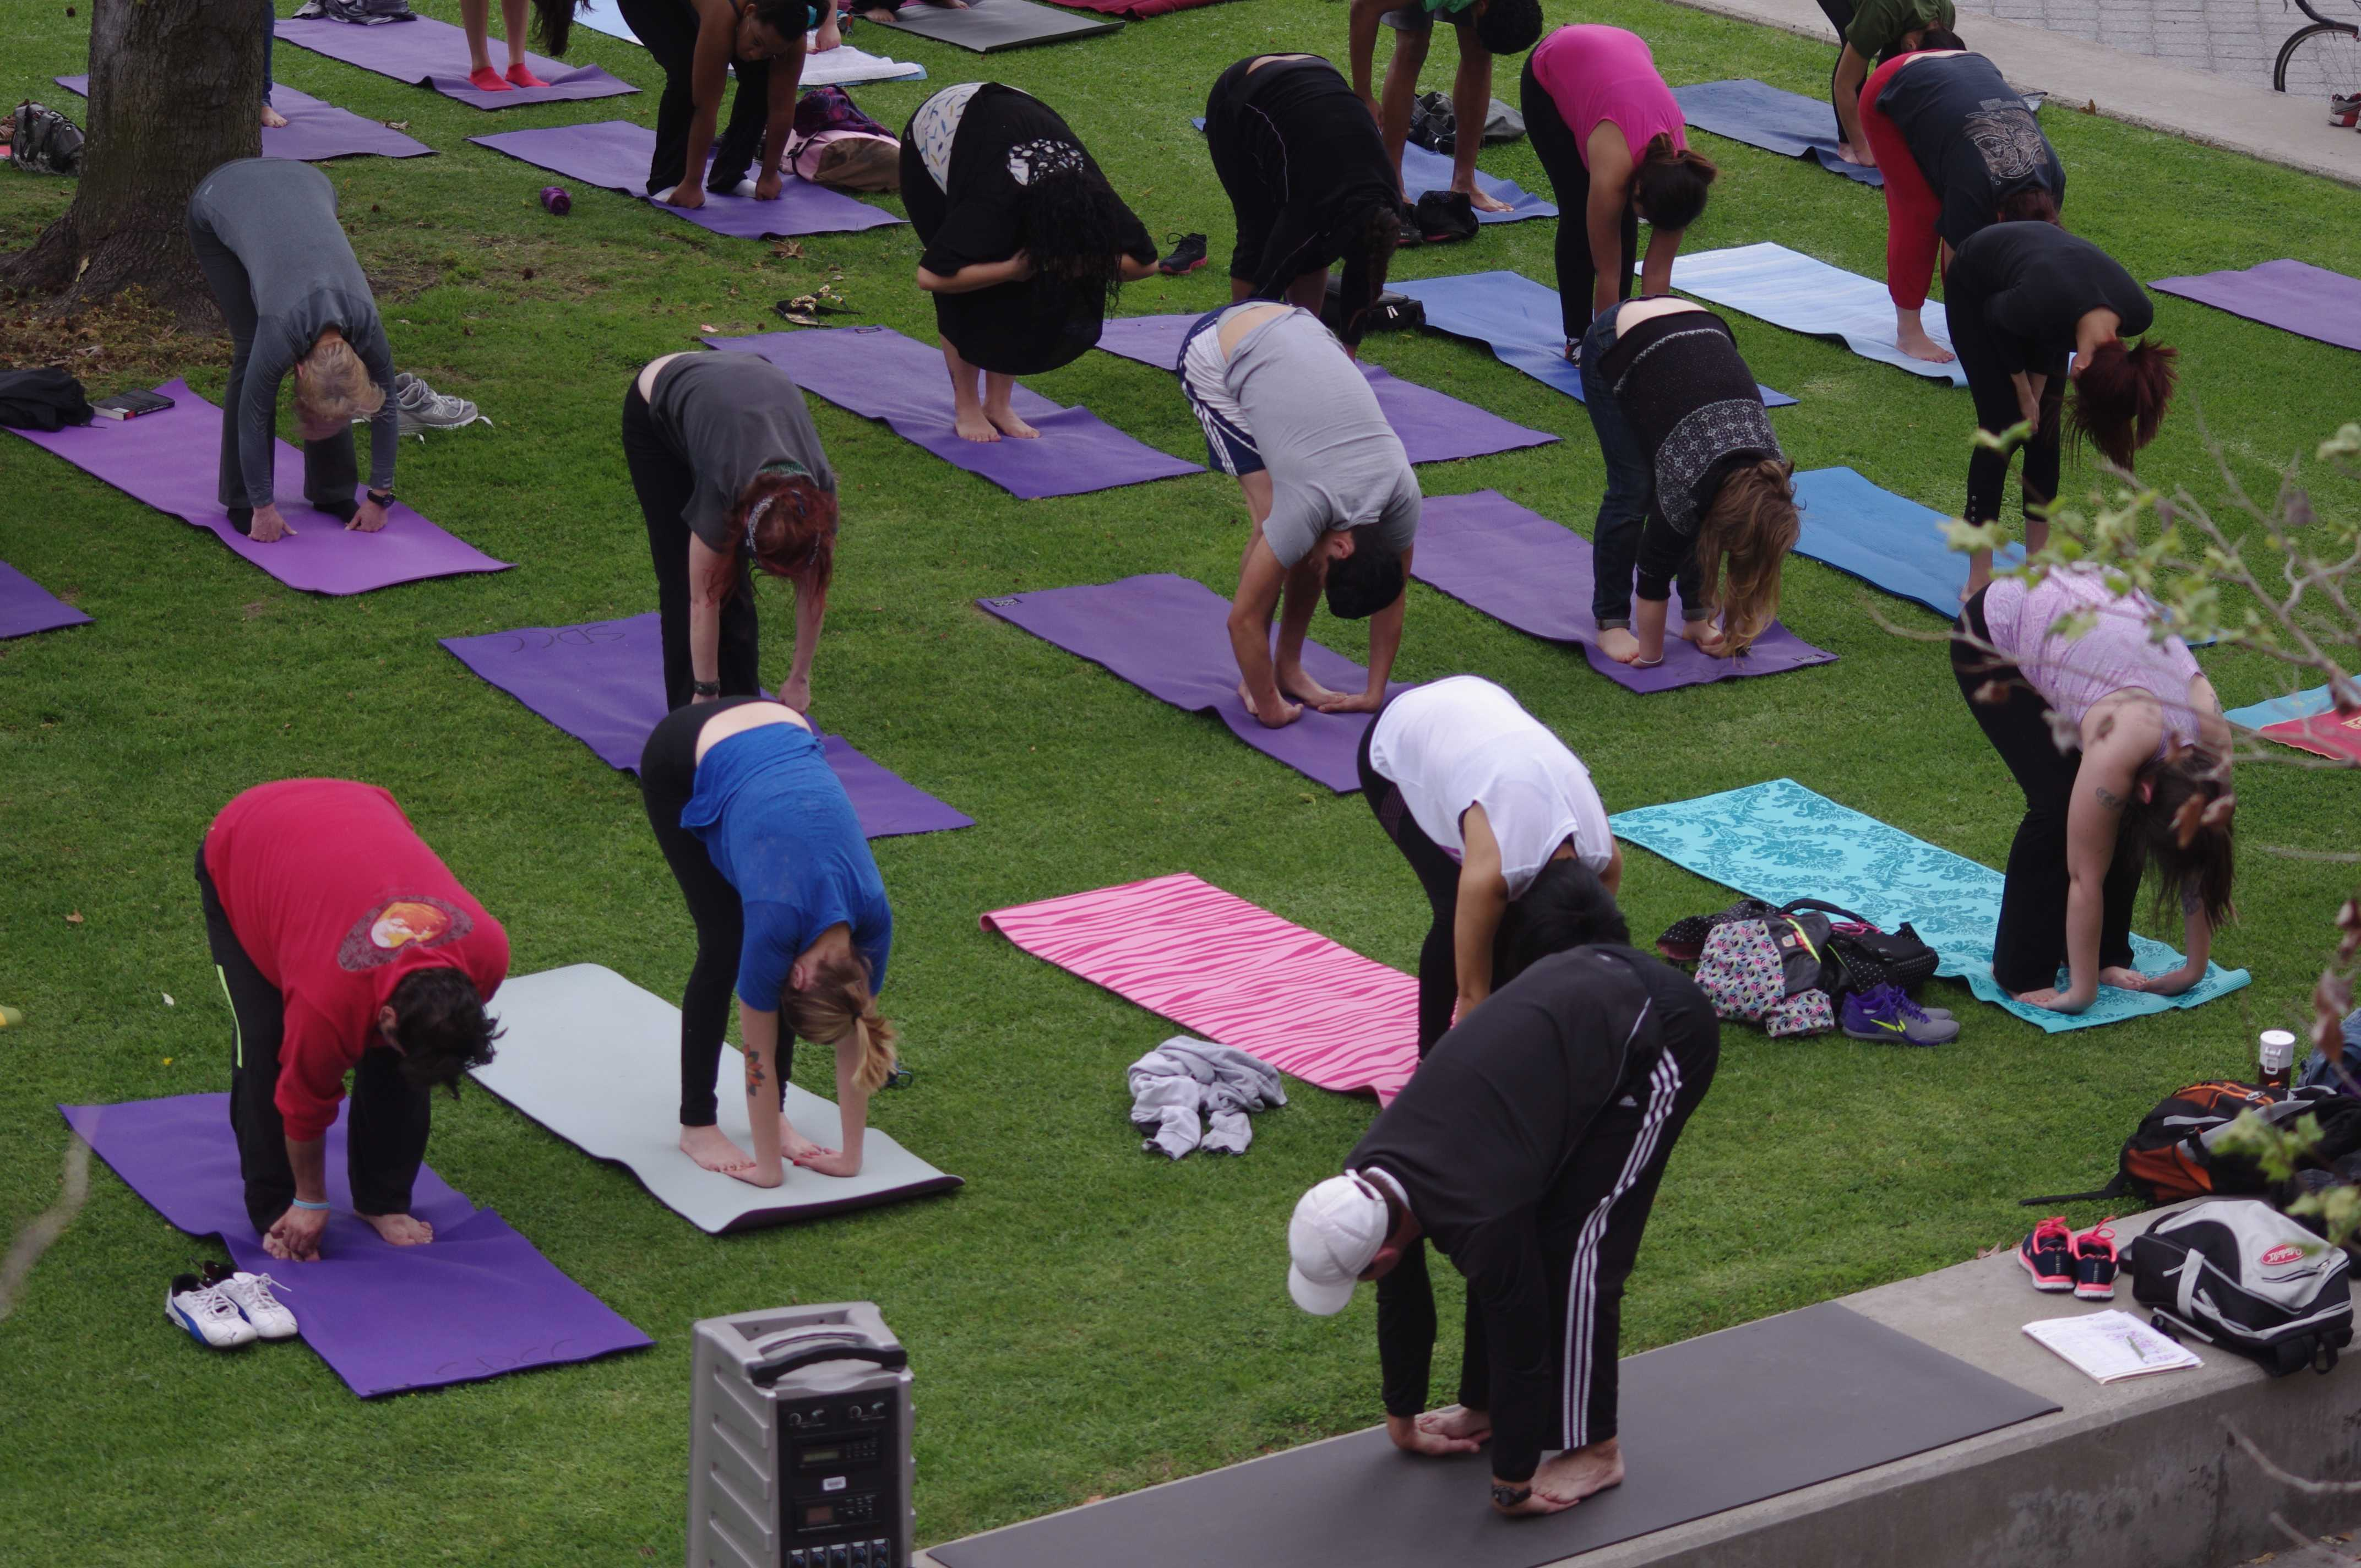 Students participate in the yoga class for Step Up to Live Well. Photo credit: Joe Kendall